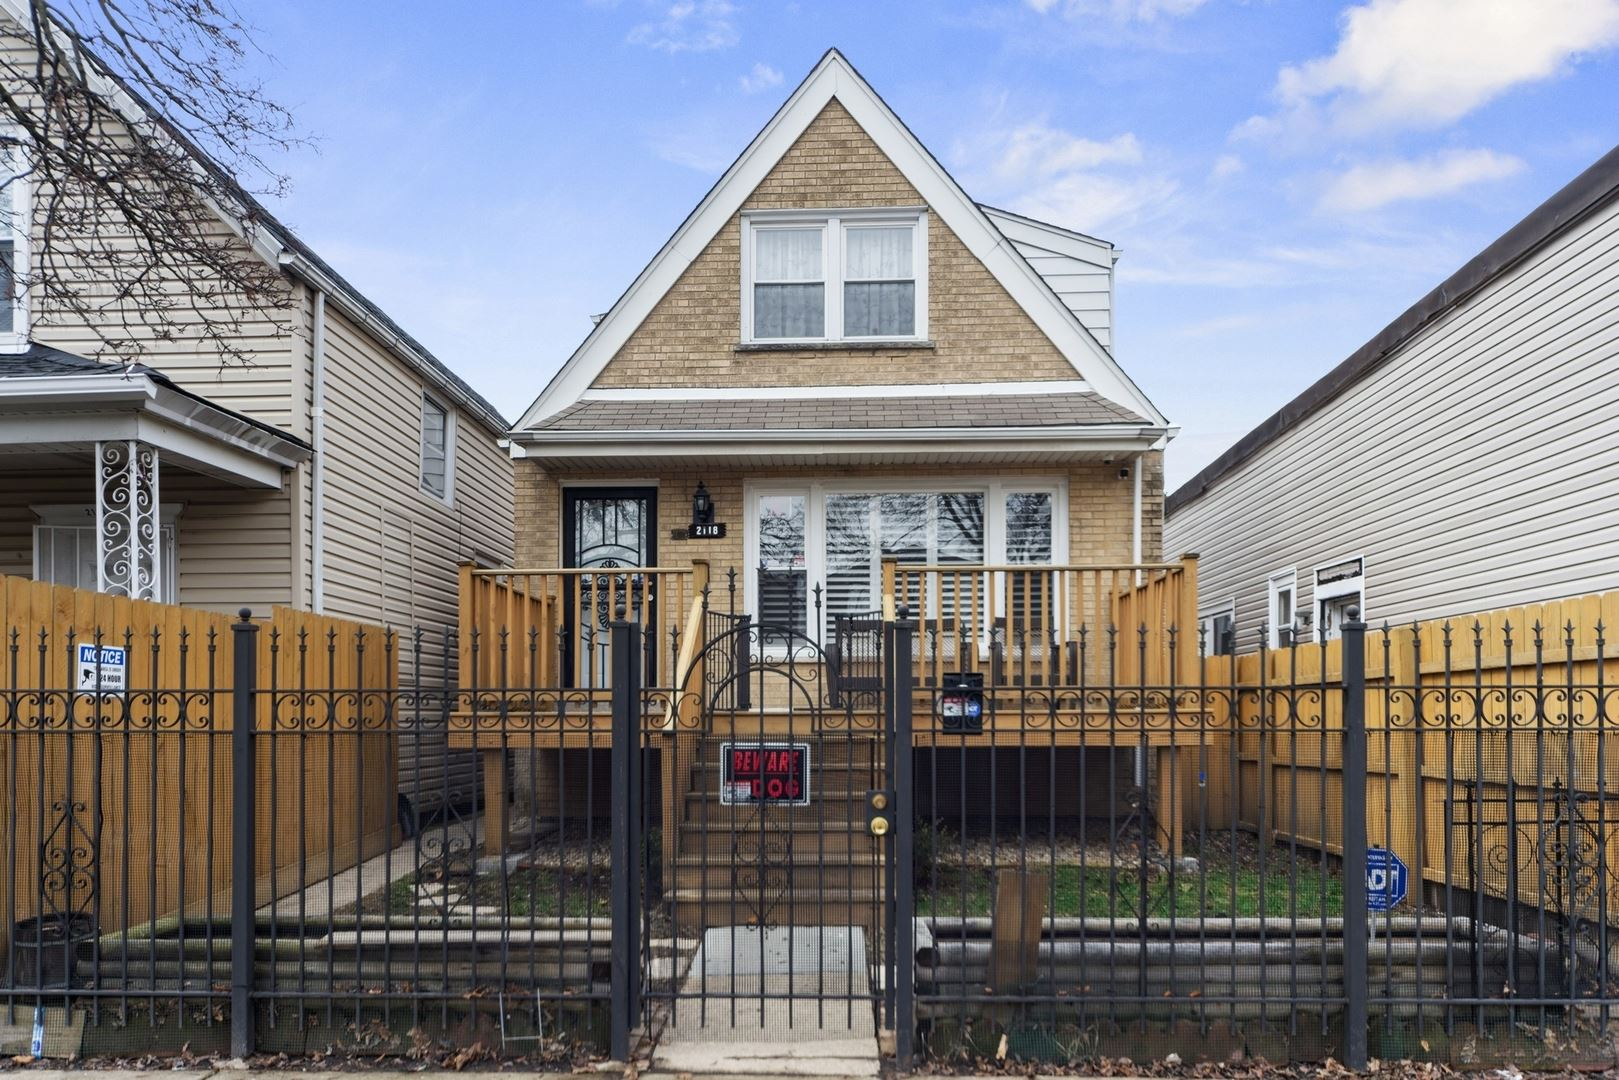 2118 N Lockwood Avenue, Chicago, IL 60639 - MLS#: 10696042